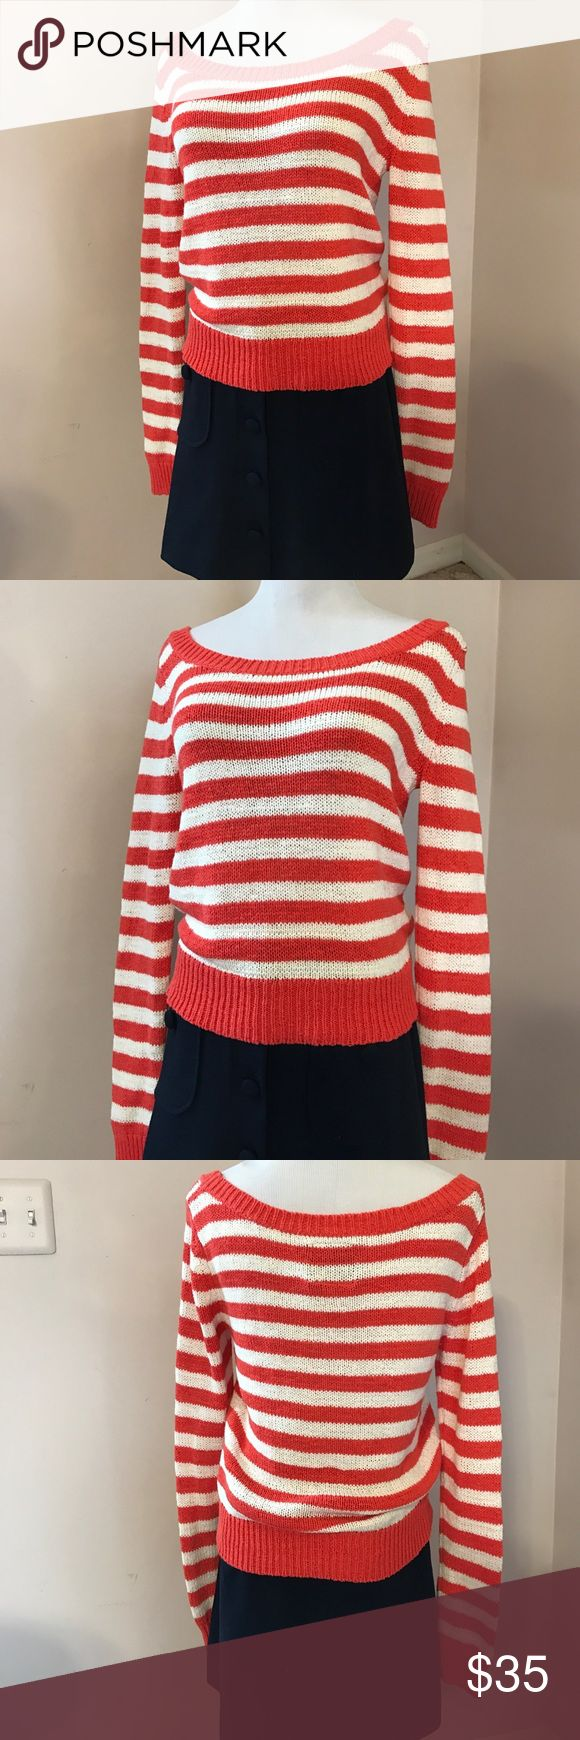 American Eagle Striped Scoop Neck Sweater NEW! What a fun sweater for spring and summer! Pair it with a cute navy Knit skirt like this (for sale in my closet) or with jeans. Never worn because it was too large for my daughter, but tags are lost. No trades or lowball offers please. American Eagle Outfitters Sweaters Crew & Scoop Necks